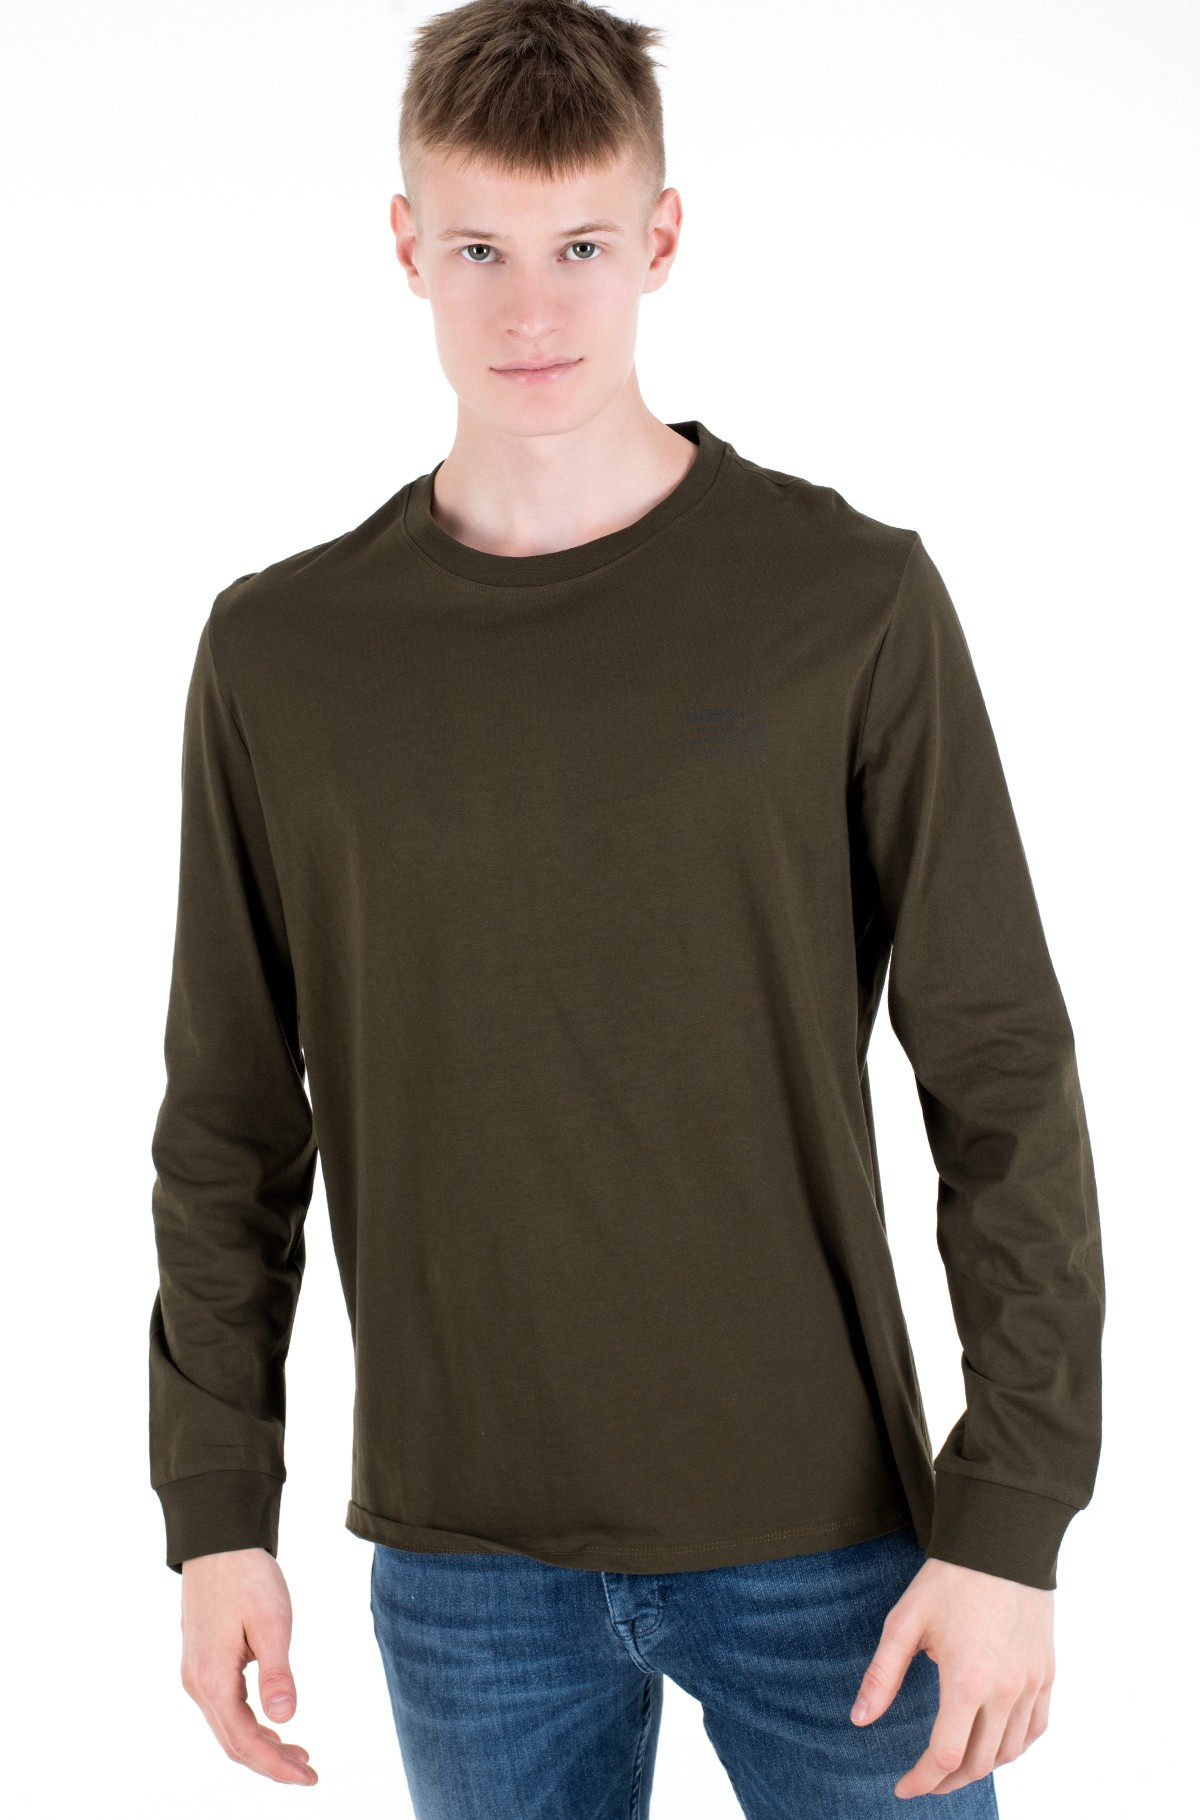 Long sleeved t-shirt M0BI67 K8HM0-full-1